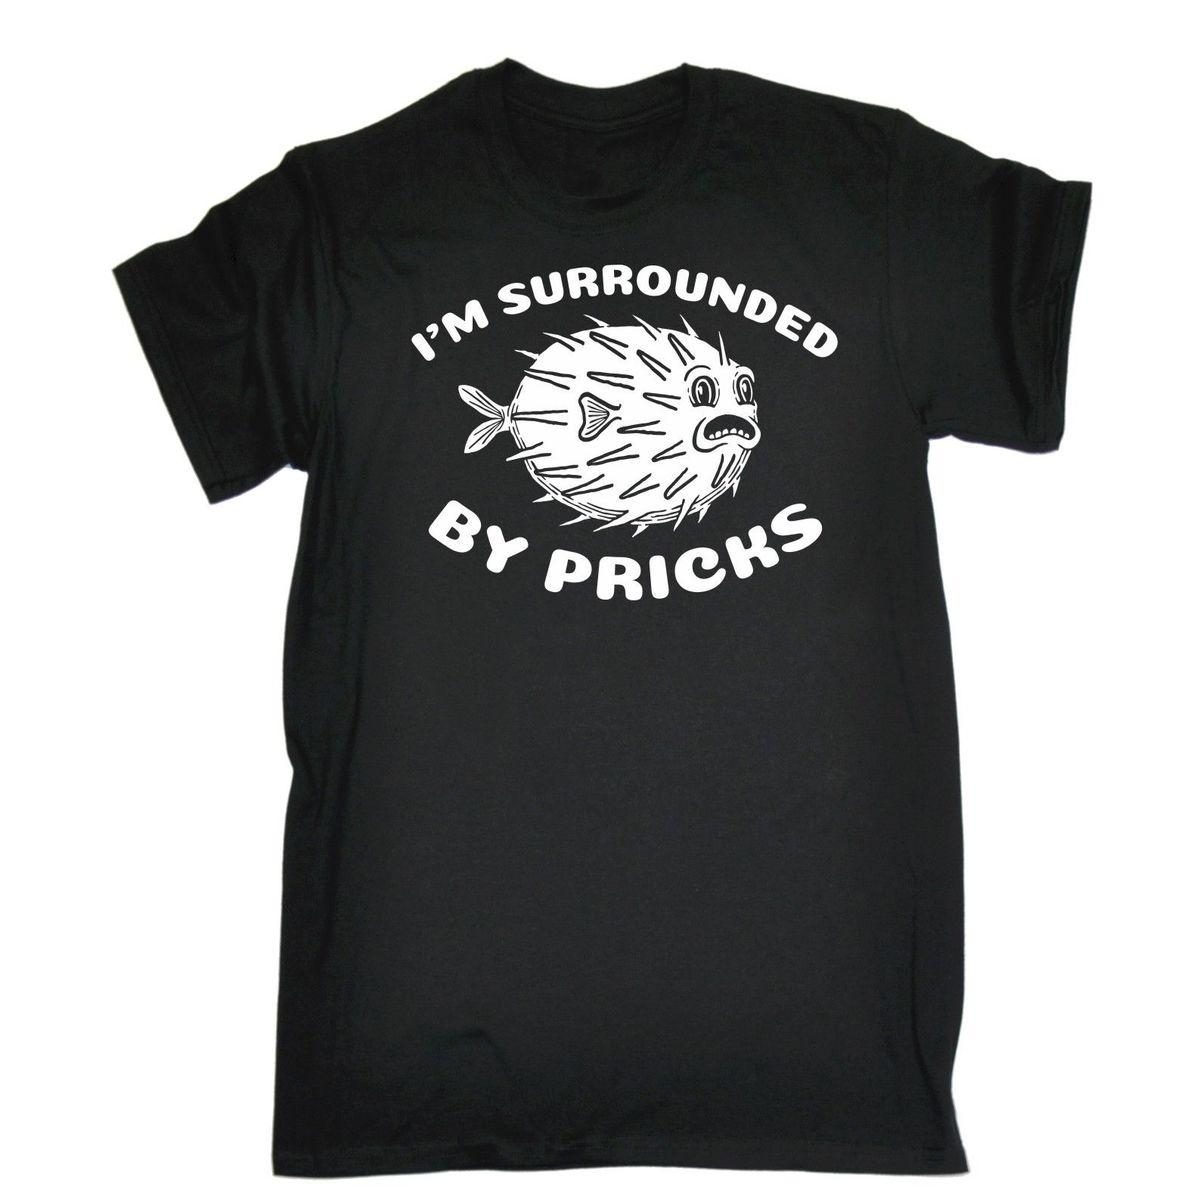 aad6c8bb41a7 Mens Im Surrounded By Pricks Funny Joke Offensive Rude T-SHIRT ...